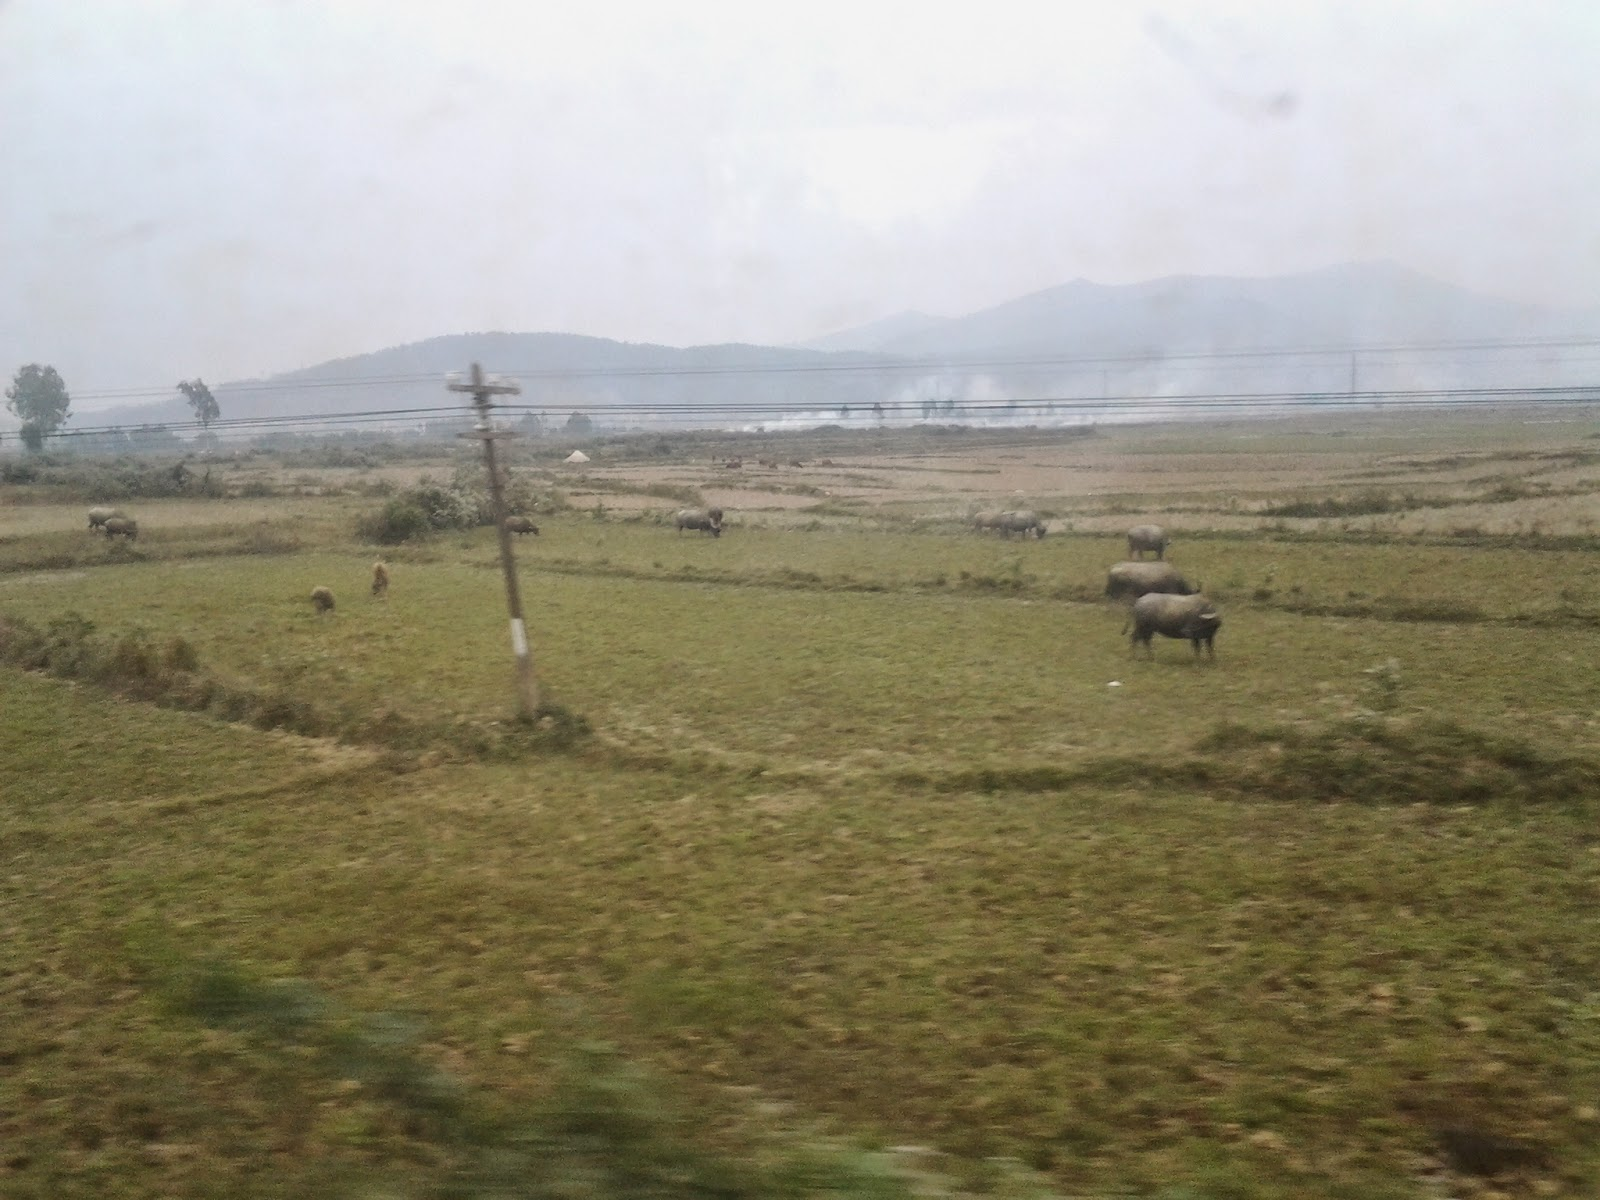 Vietnam Holiday train scenery: buffaloes